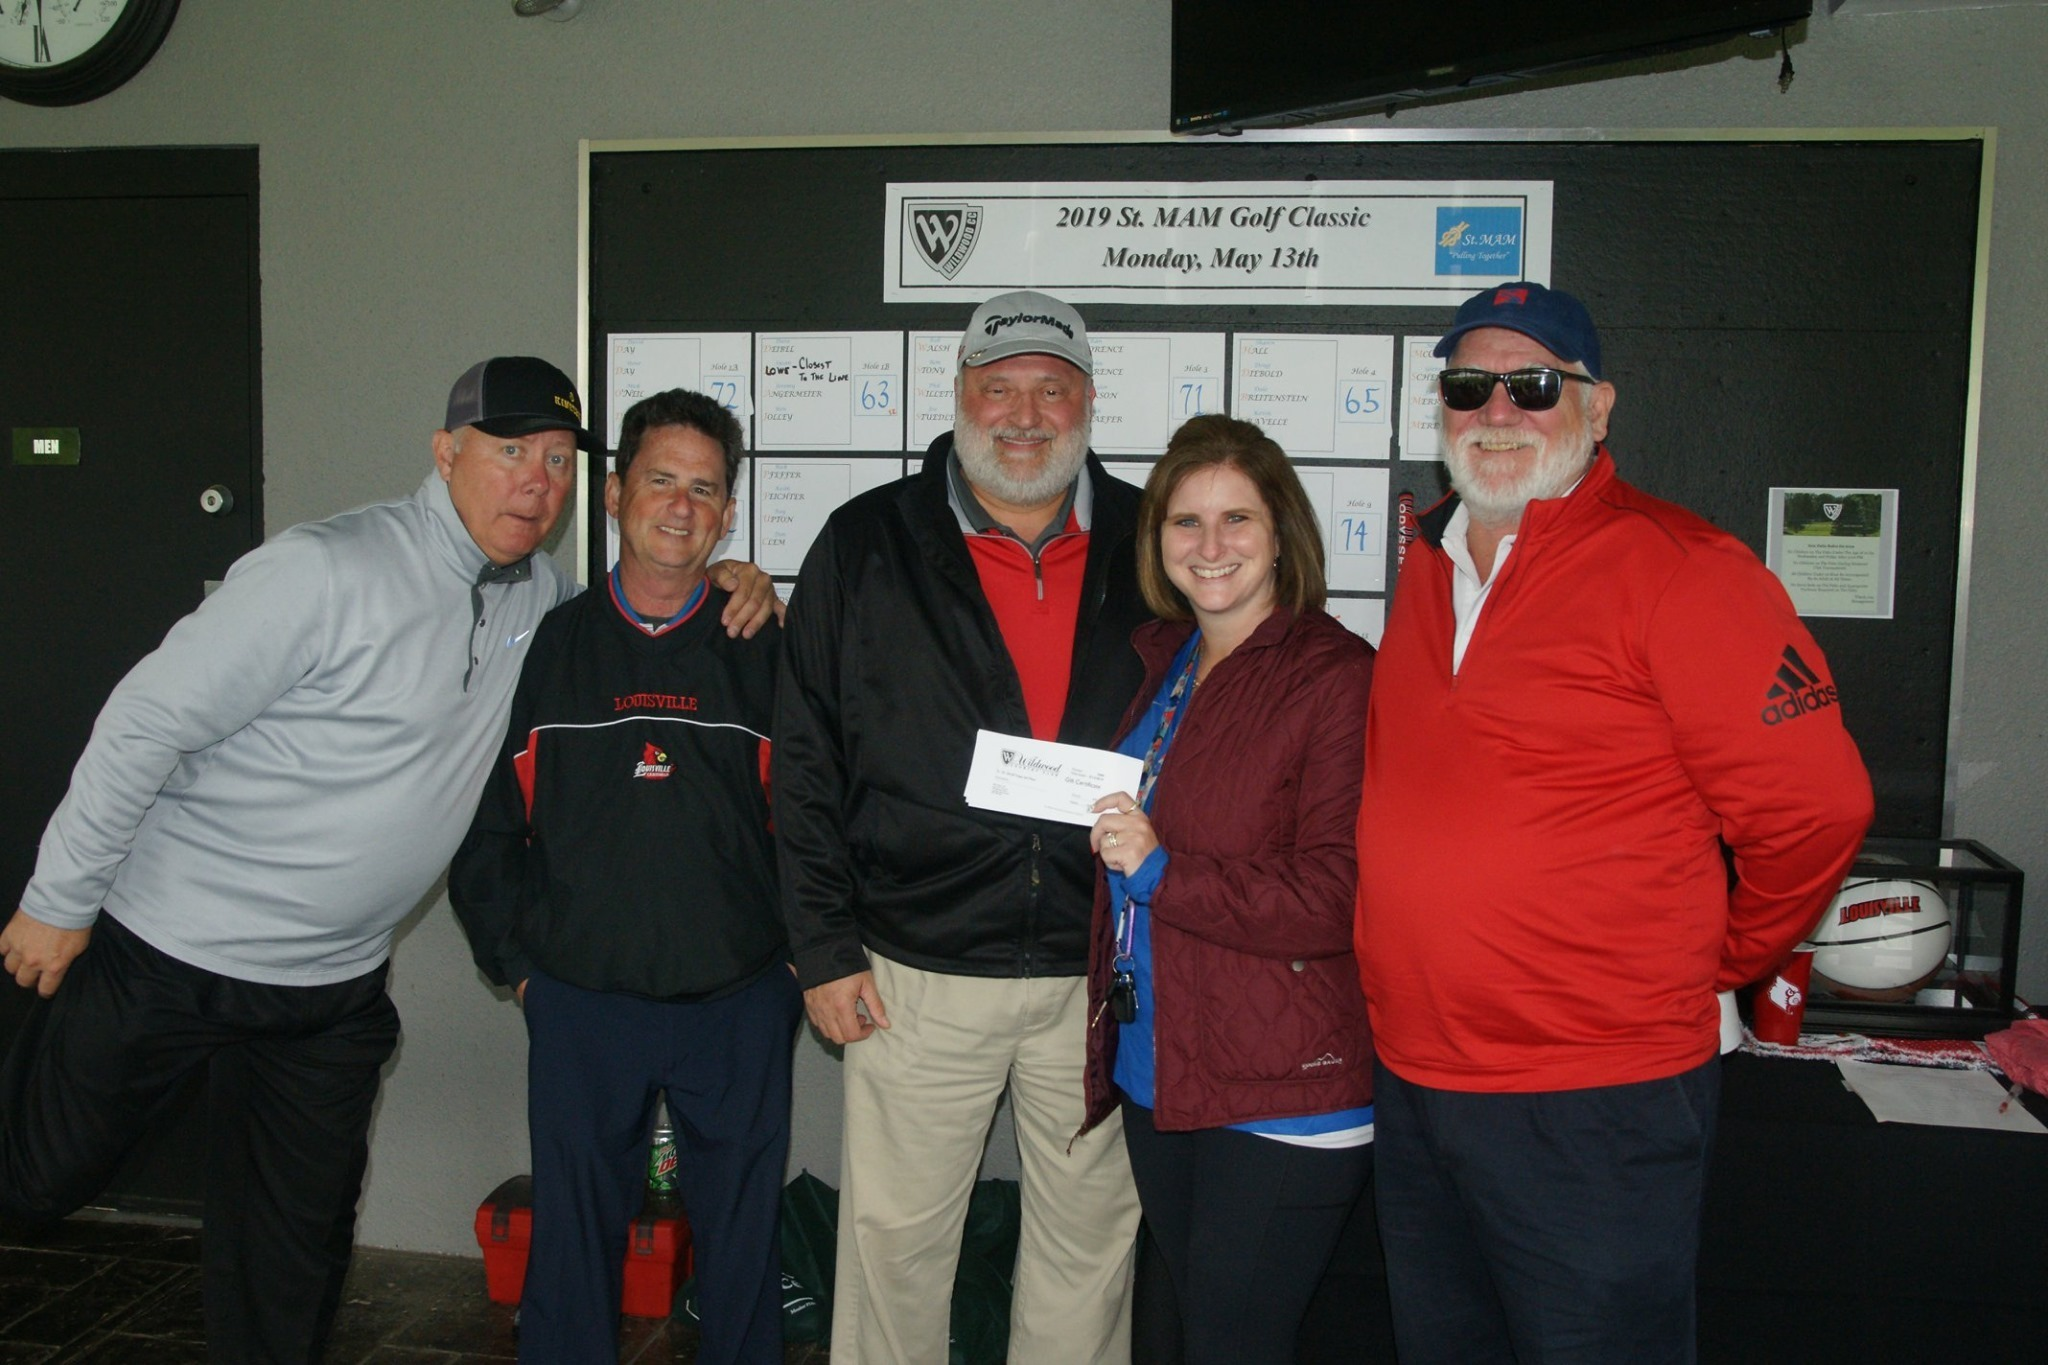 St. Matthews Area Ministries Golf Classic gallery image #13